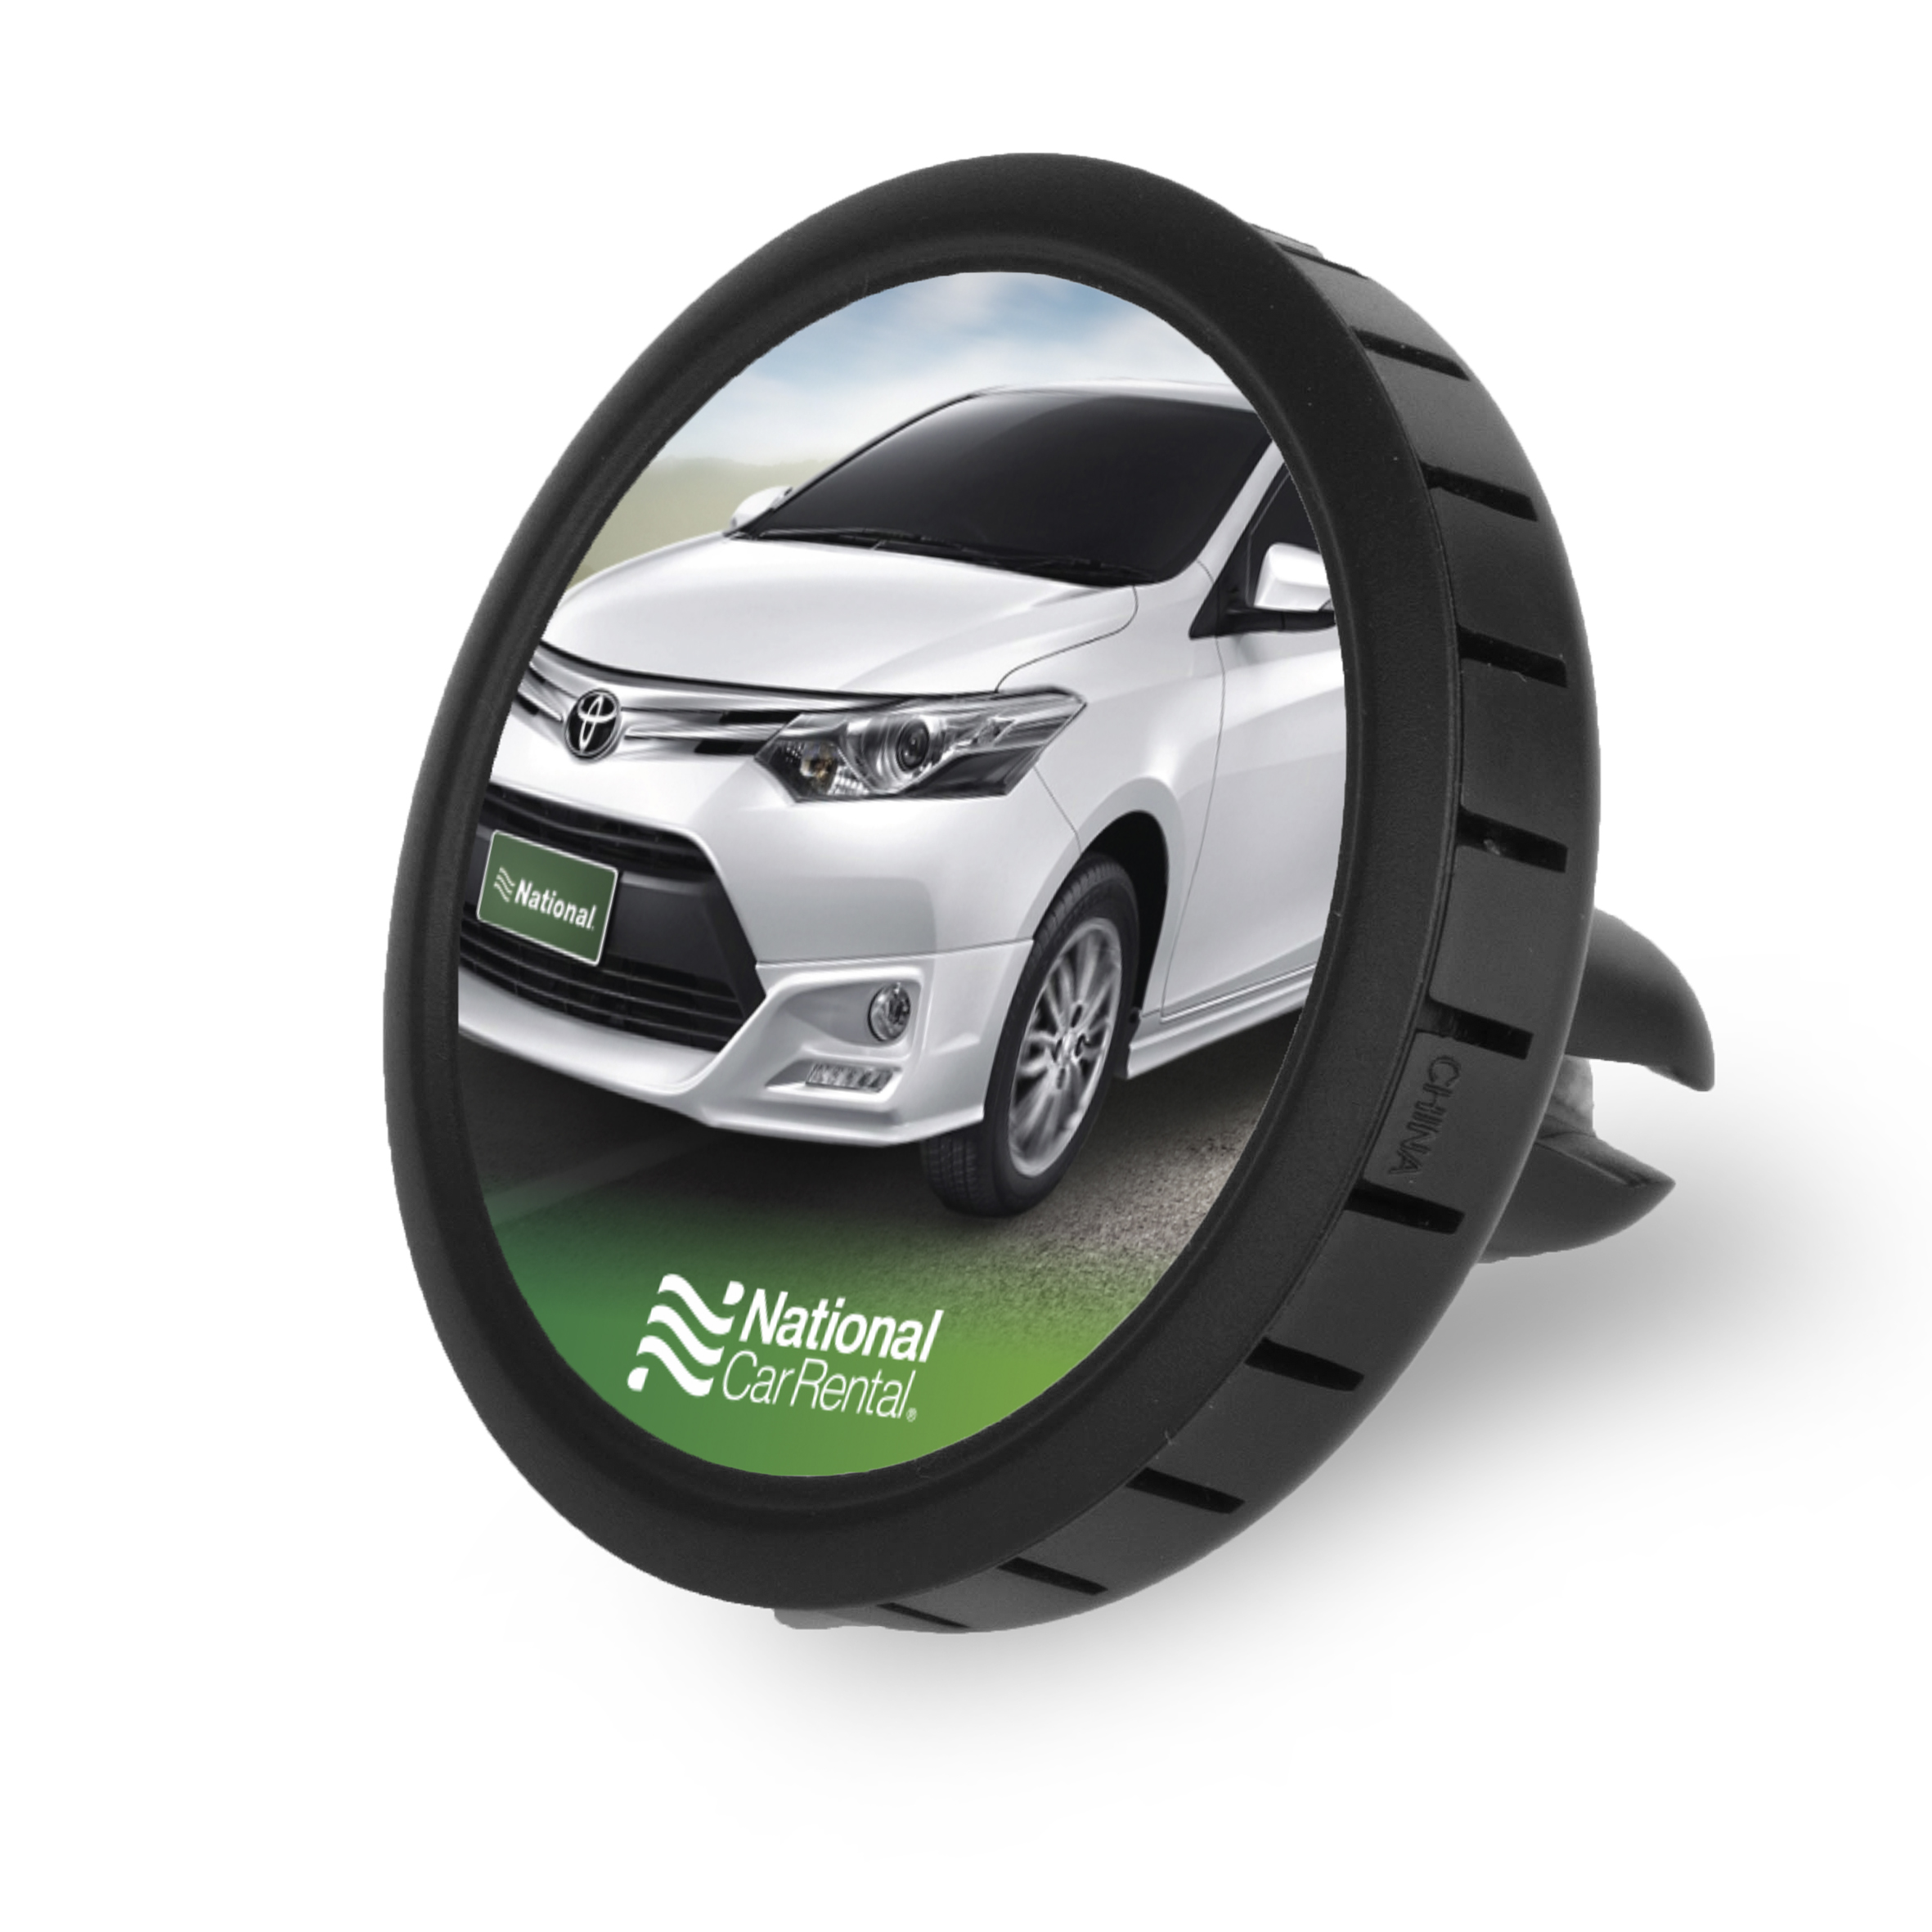 Product: Happy-Travels Car Vent Air Freshener